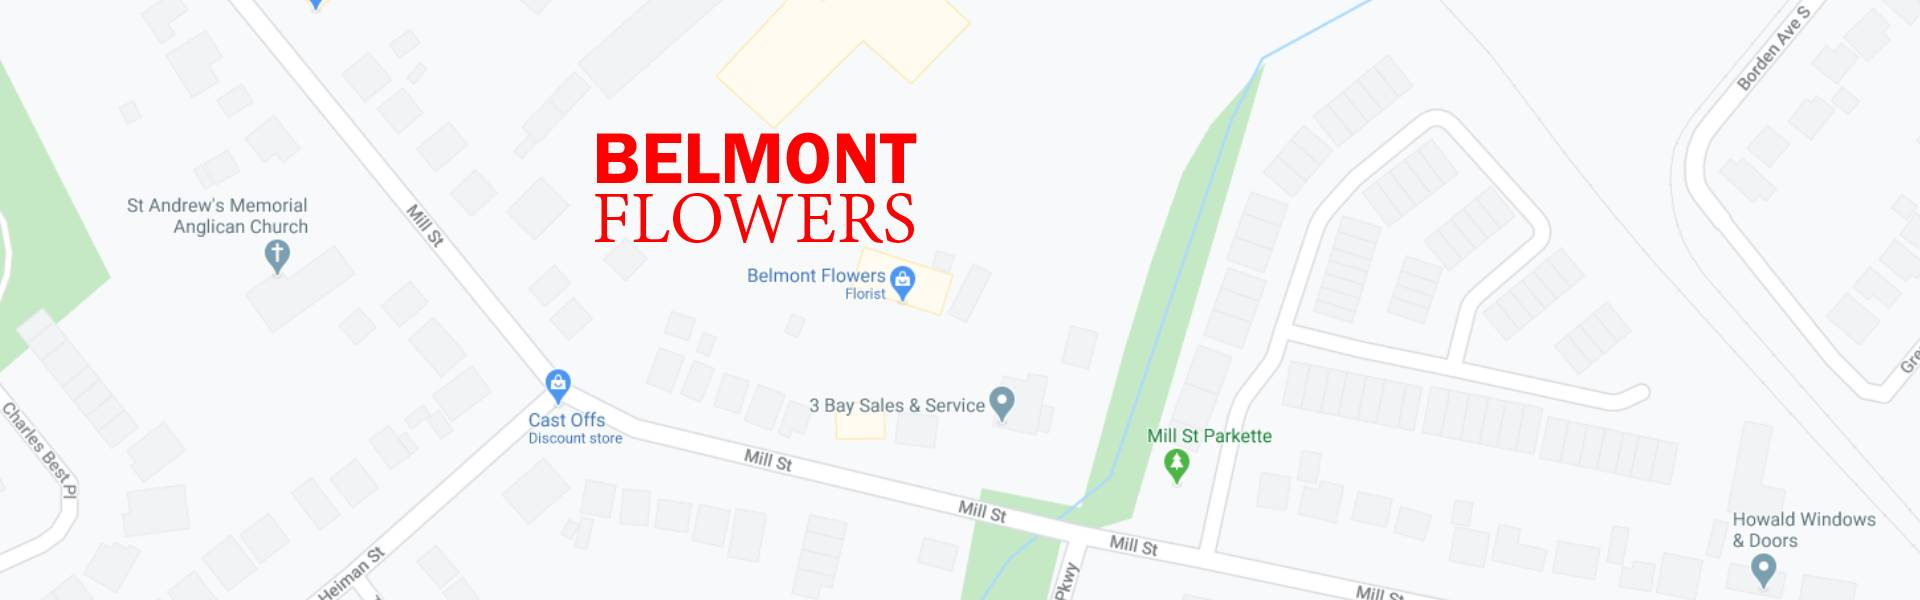 Belmont Flowers | About Us